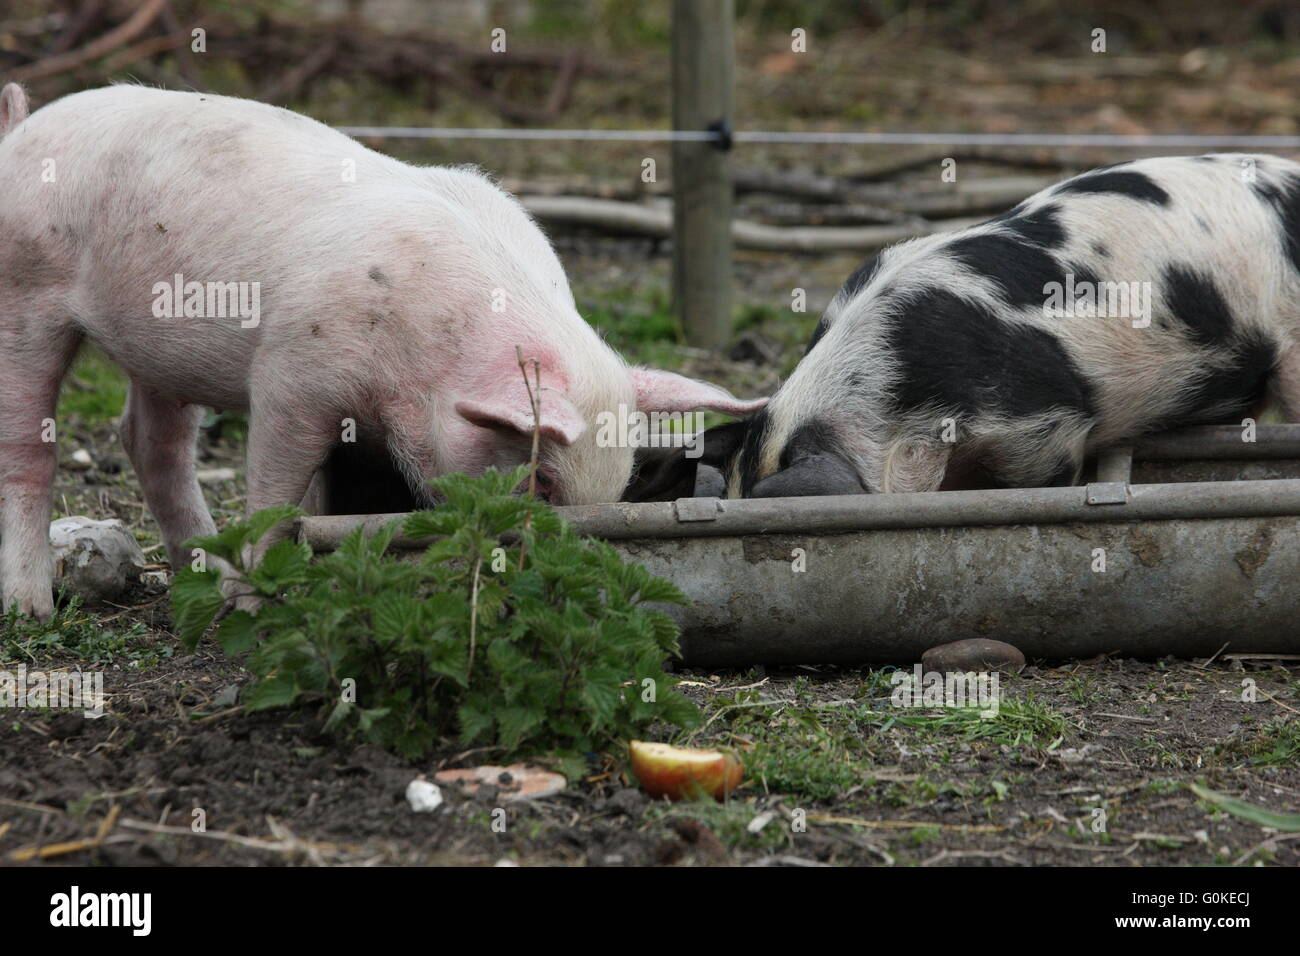 2 weaner pigs large white and spotted one eating out of a tough,outdoor pigs - Stock Image